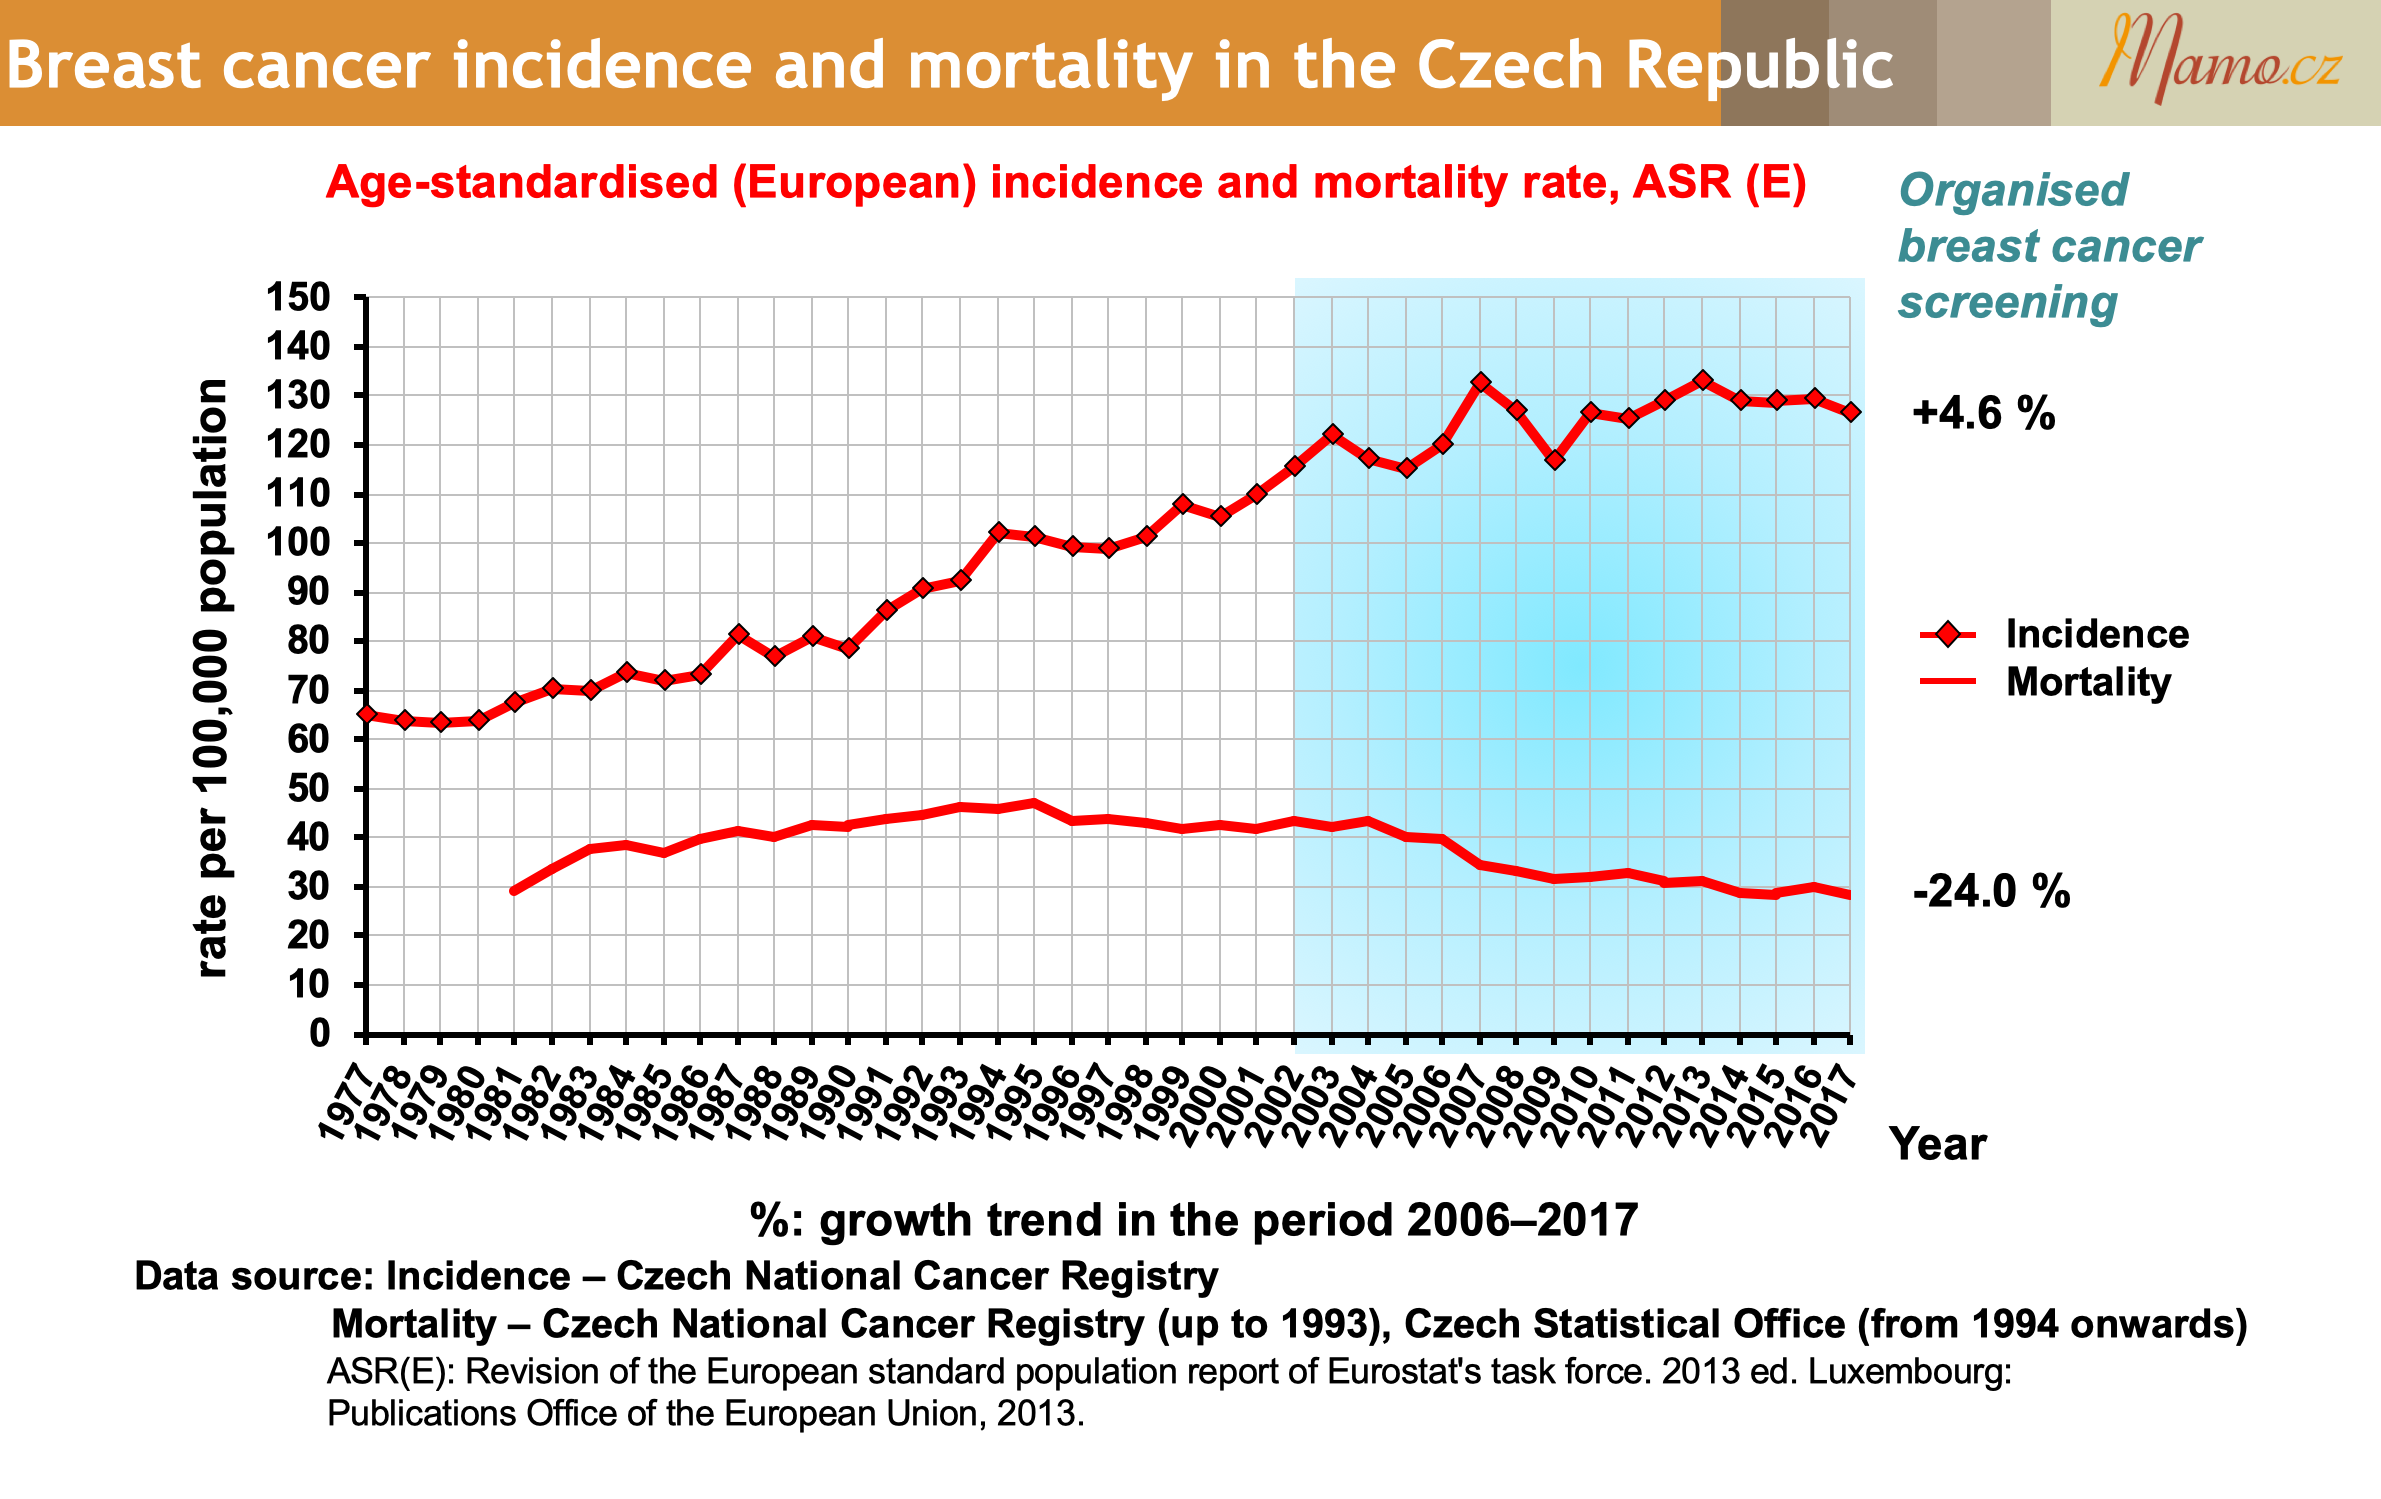 Breast cancer incidence and mortality in the Czech Republic